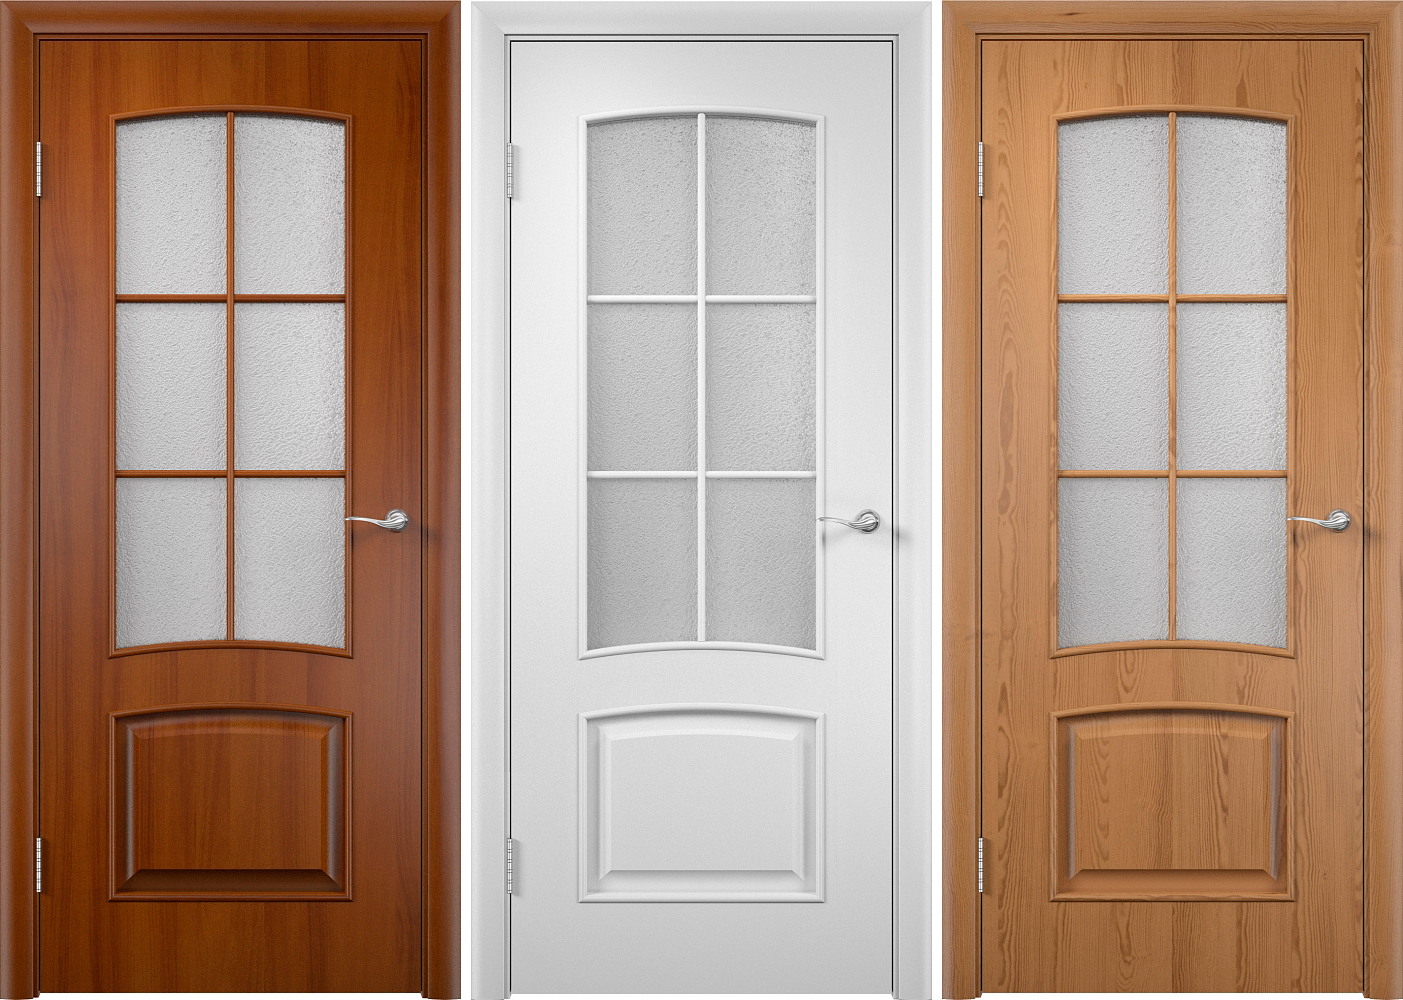 Lamination - decorative finishing of interior doors